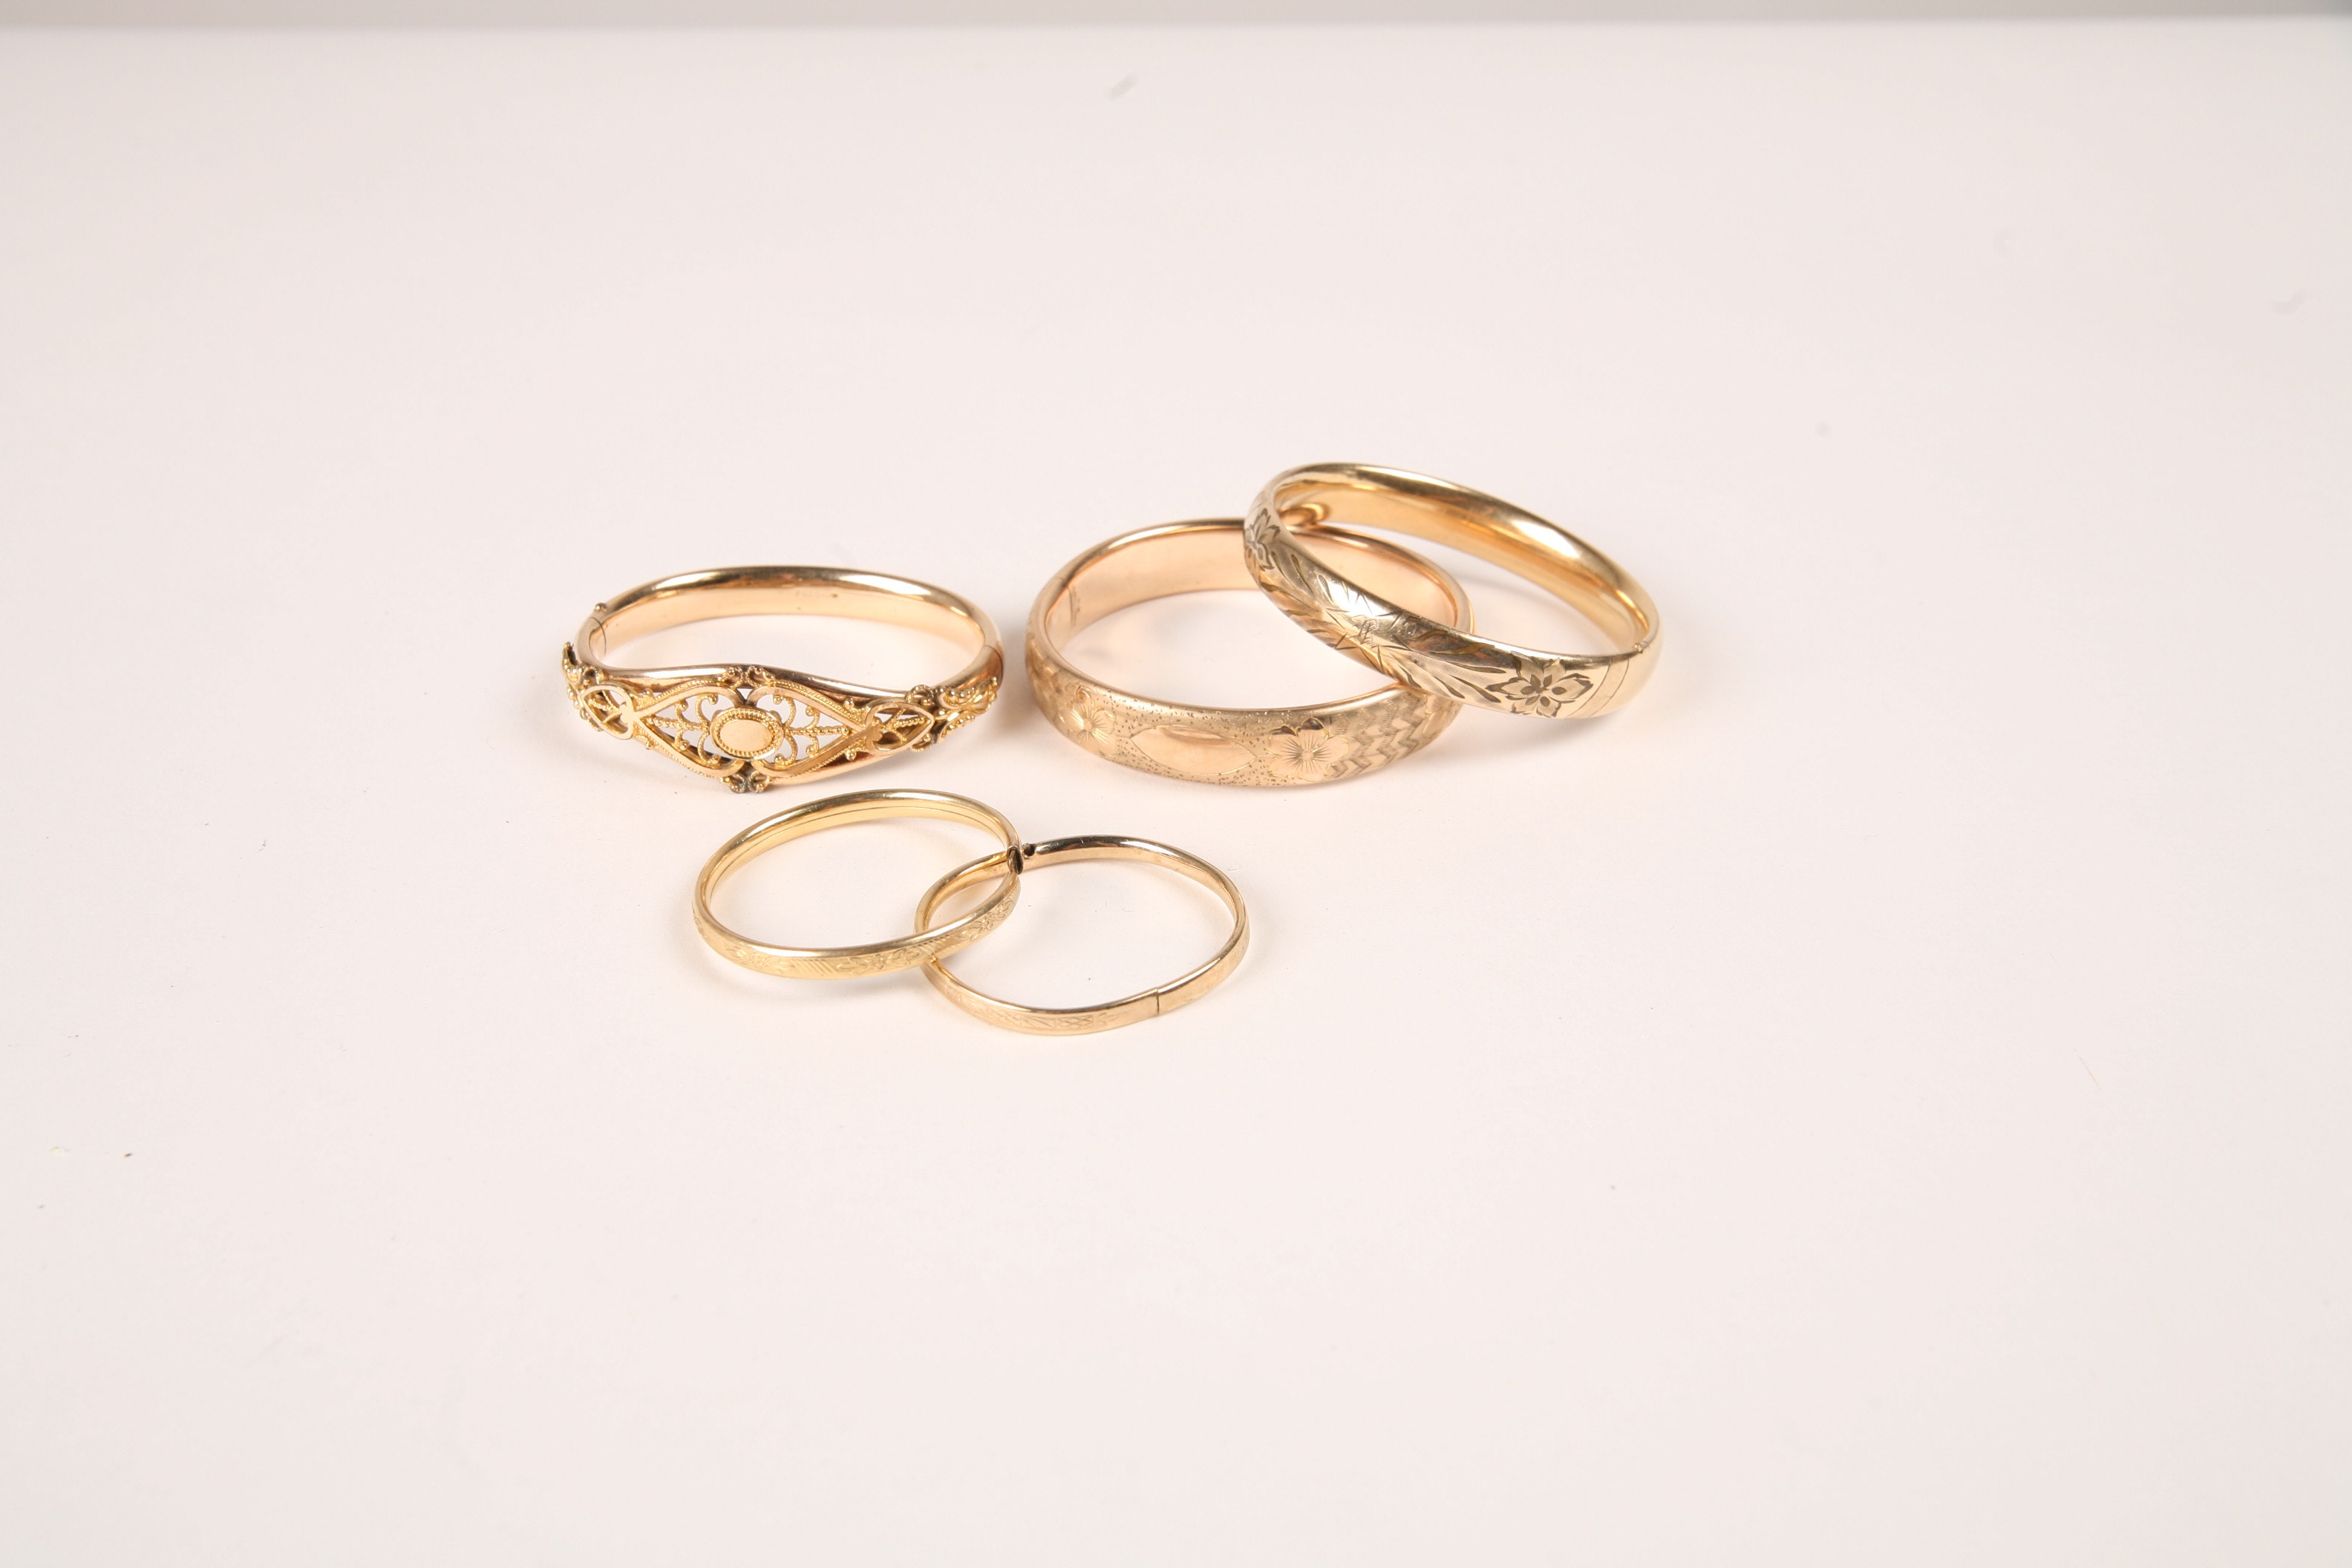 Antique Victorian Gold Filled Bangle Bracelets with Floral Etching